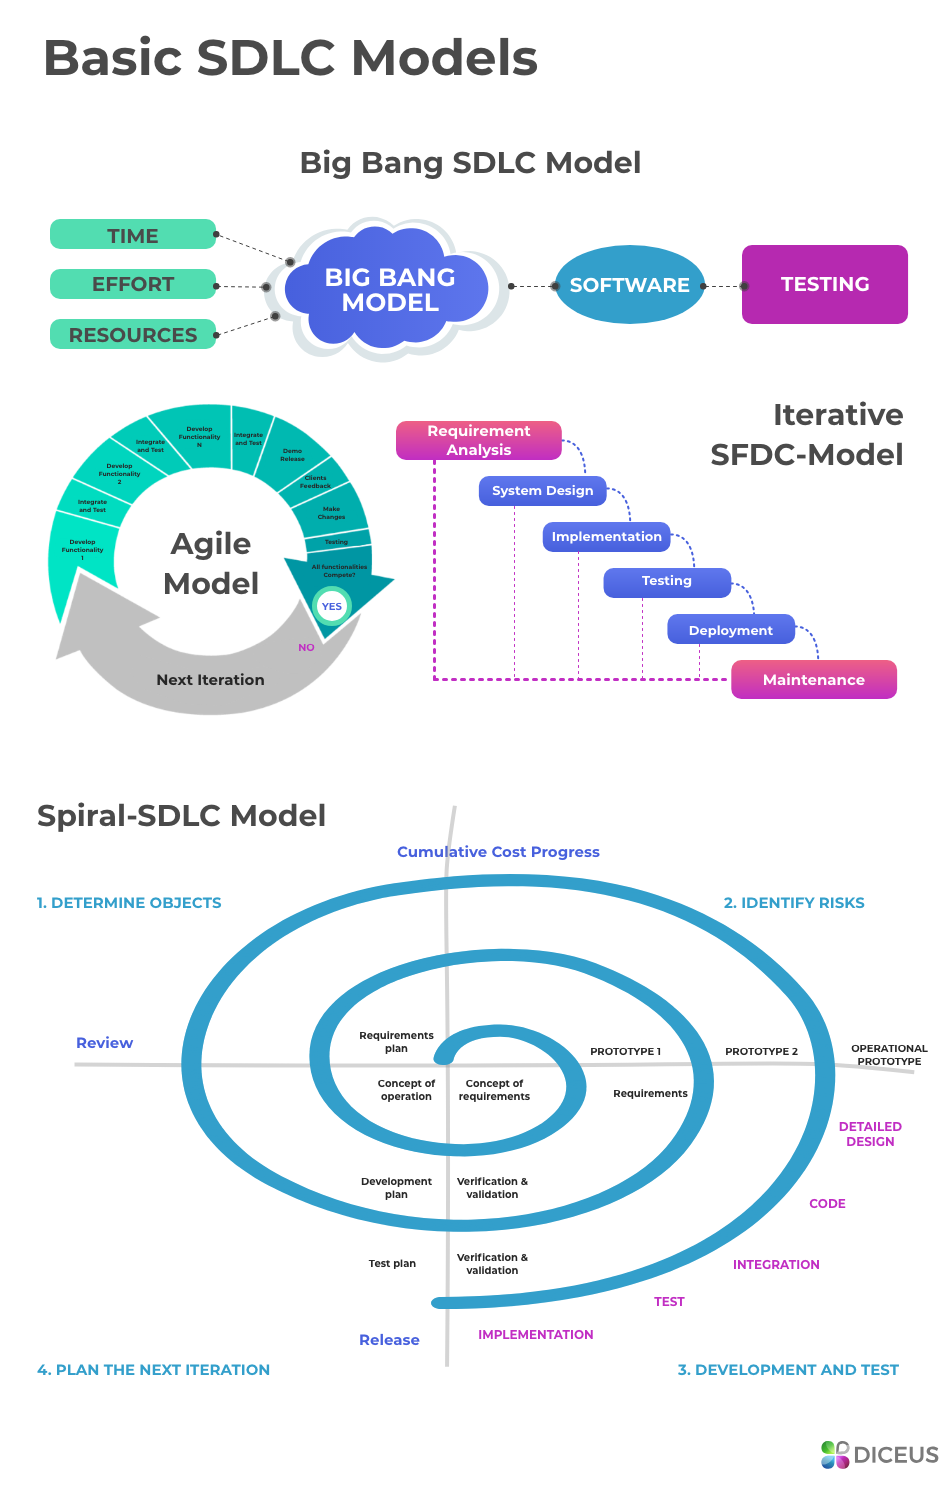 Insurance product development by SDLC models